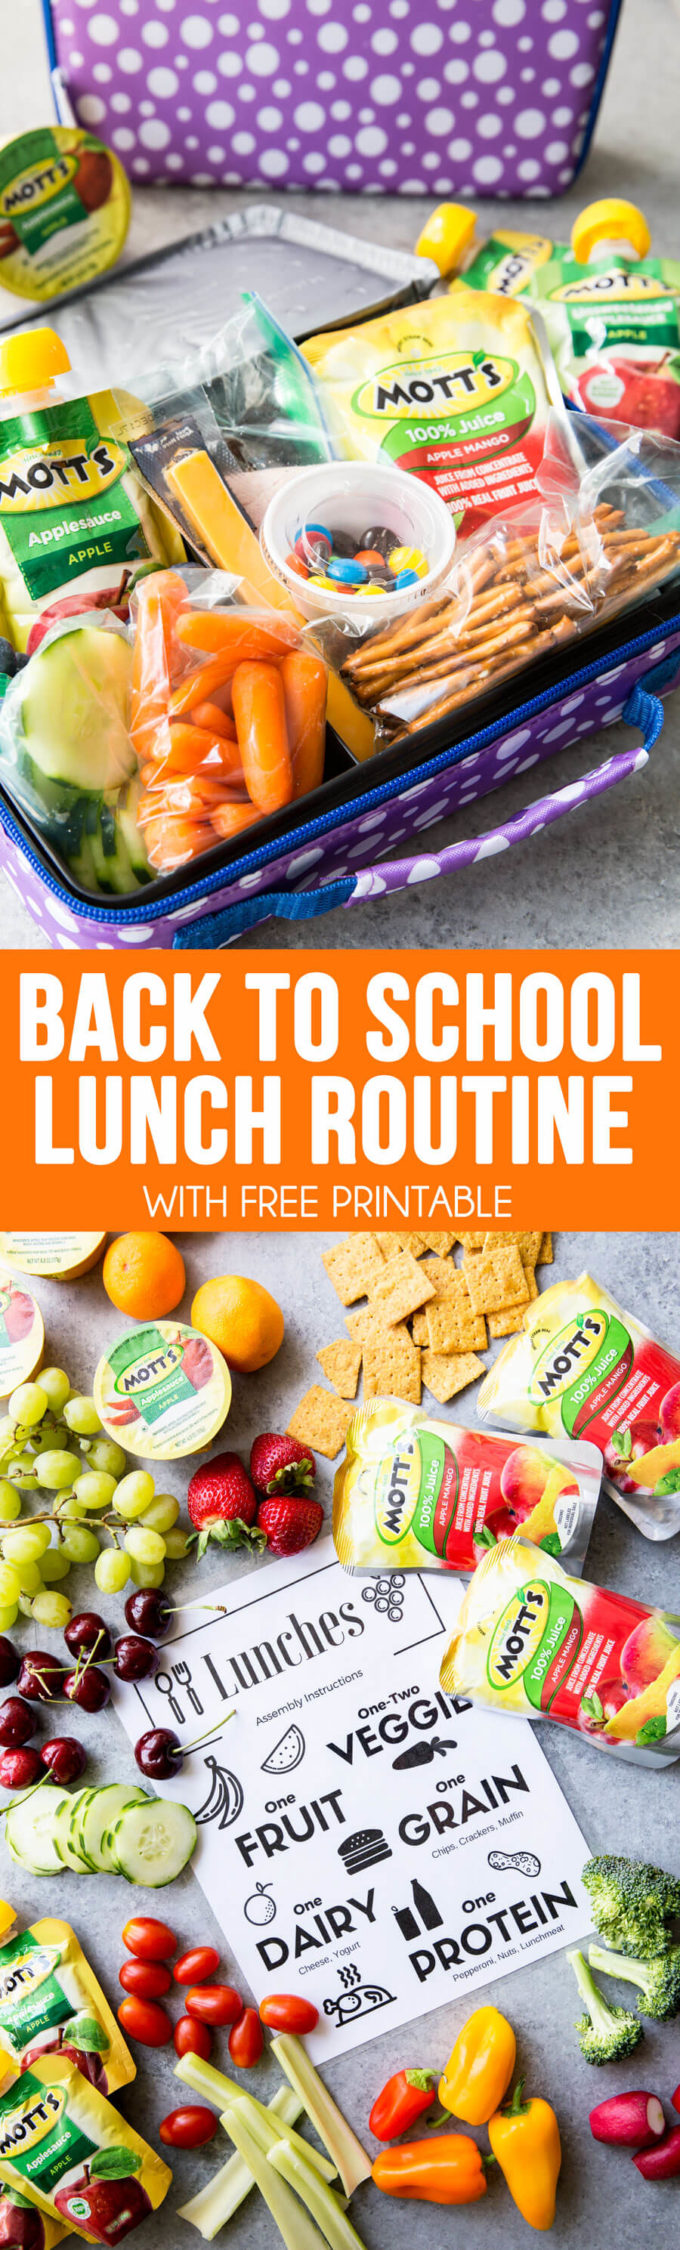 Back to School Lunch Routines